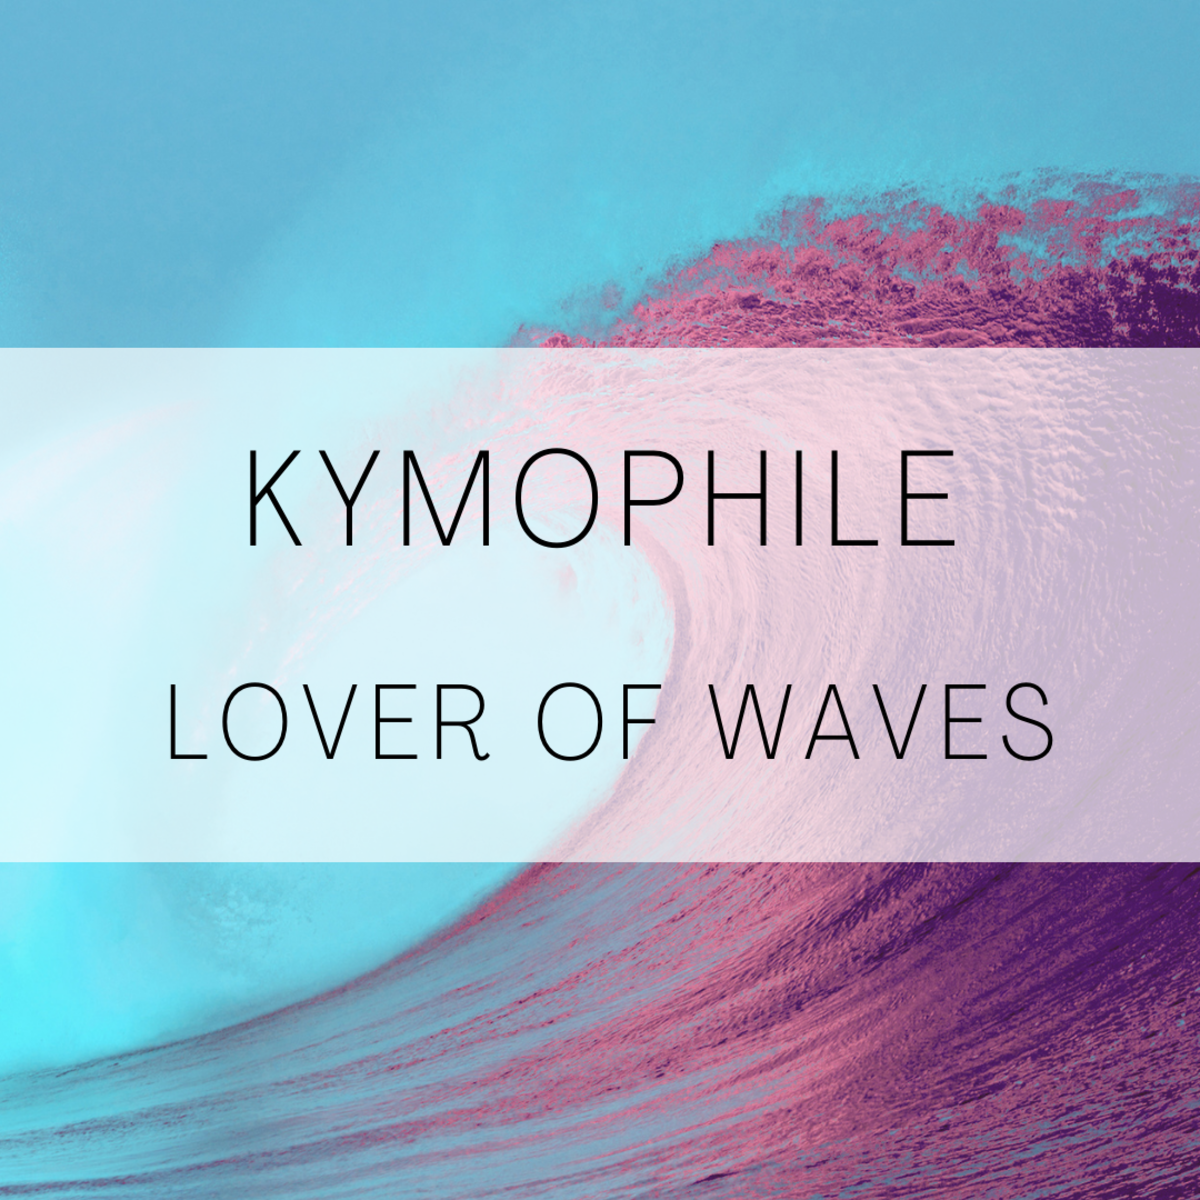 Kymophile, a lover of waves